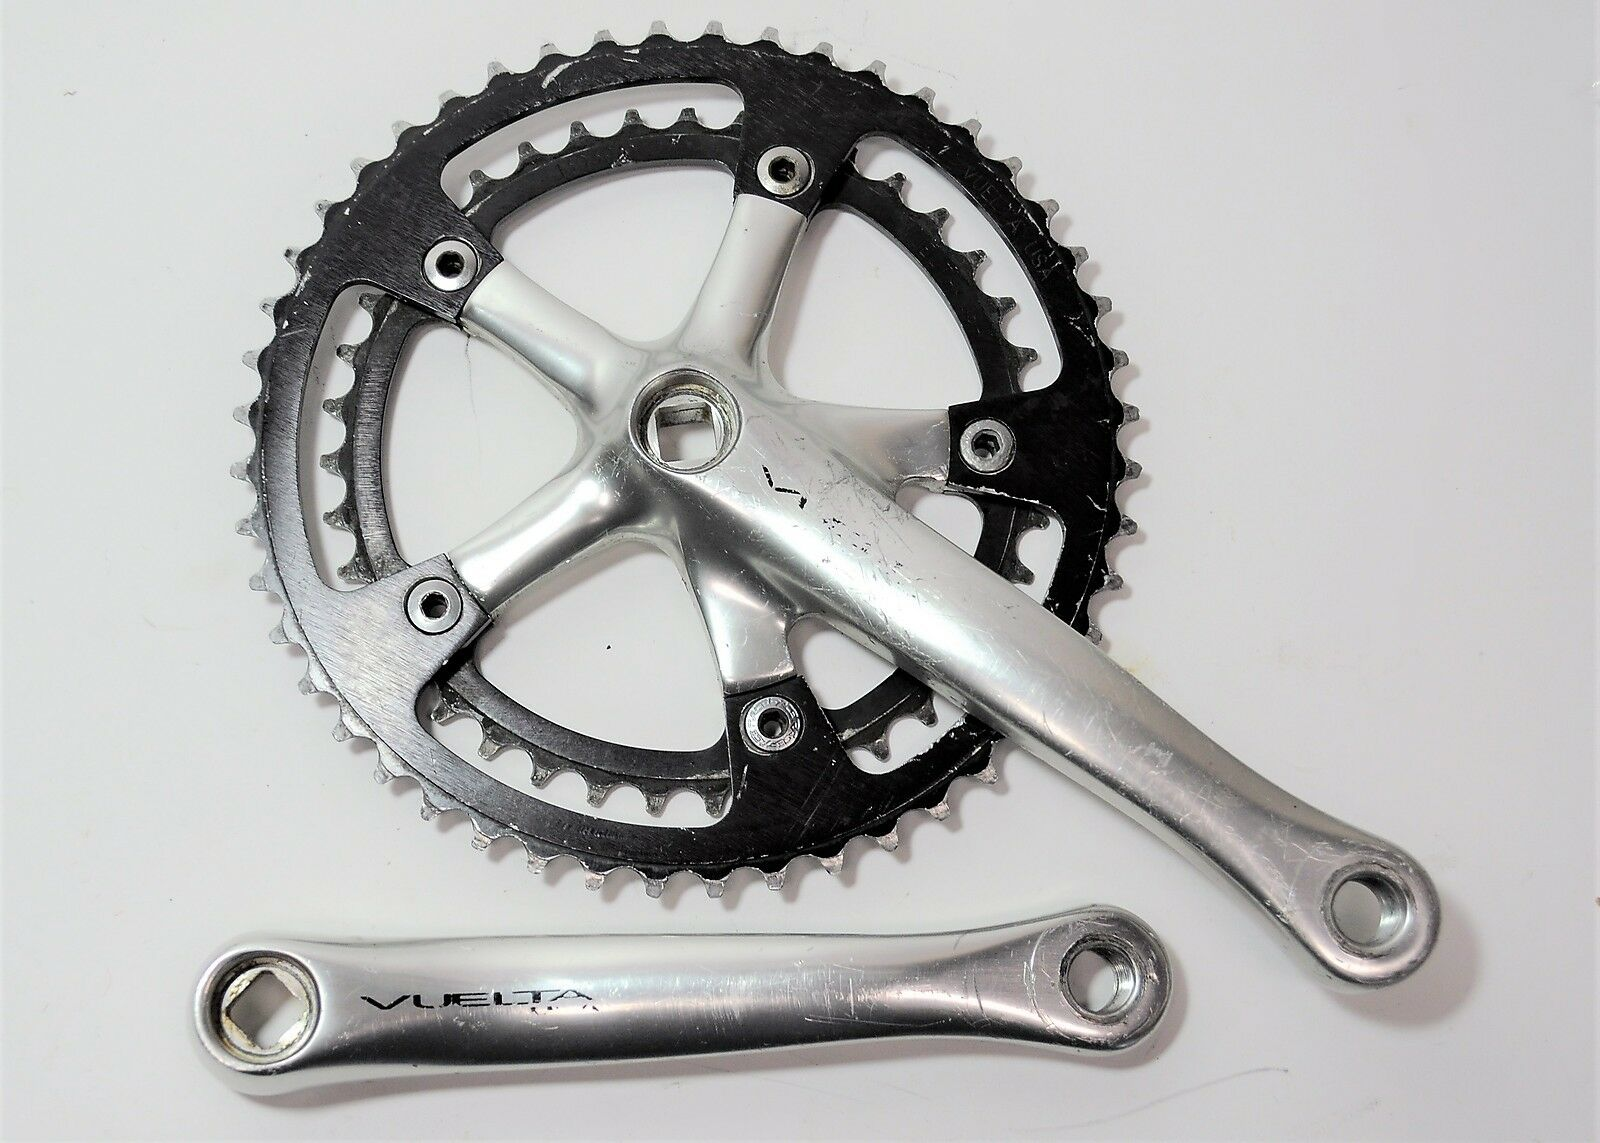 VINTAGE VUELTA USA BICYCLE 170  MM COMPACT 48 39 TOOTH CRANKSET 9 16 X 20 TPI  sale online discount low price